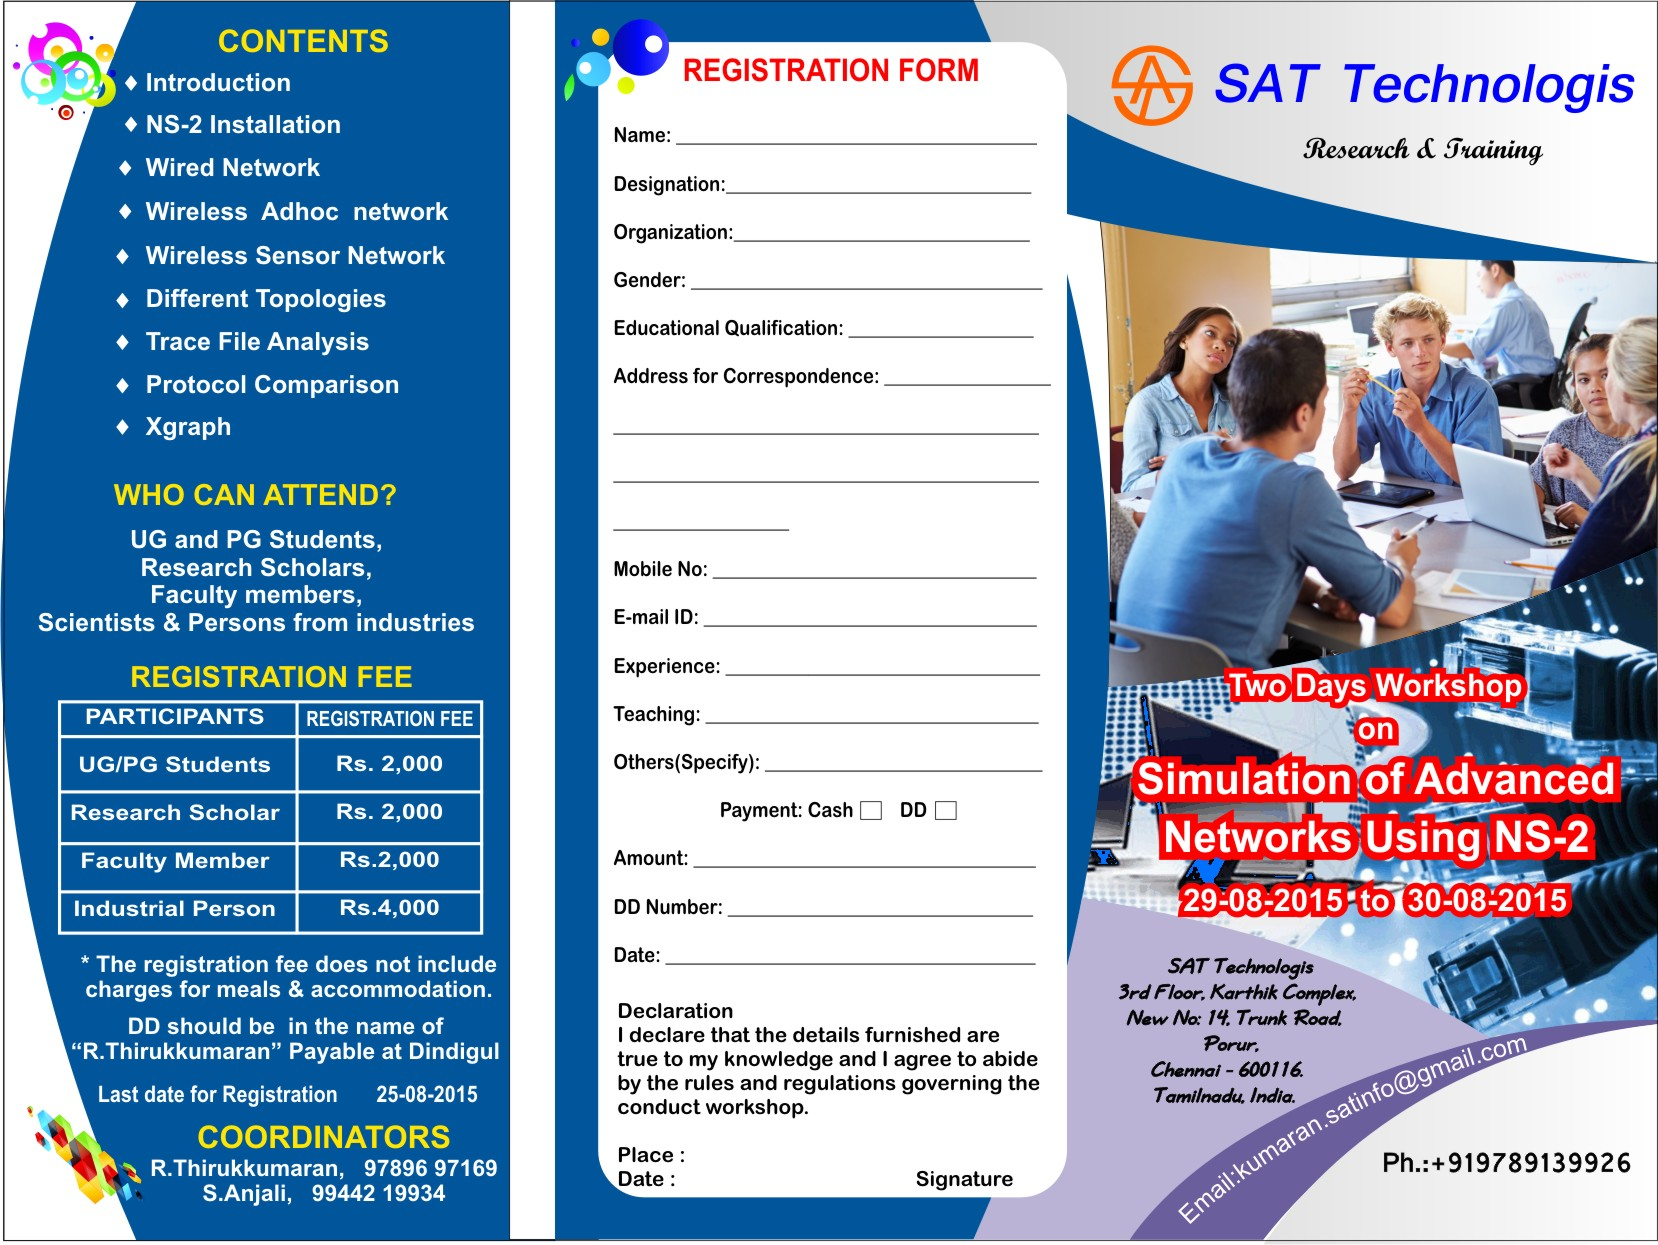 Book Online Tickets for Two Days Workshop on Simulation of Advan, Chennai. Two Days Workshop on Simulation of Advanced Networks using NS-2 From 29-08-2015 To 30-08-2015